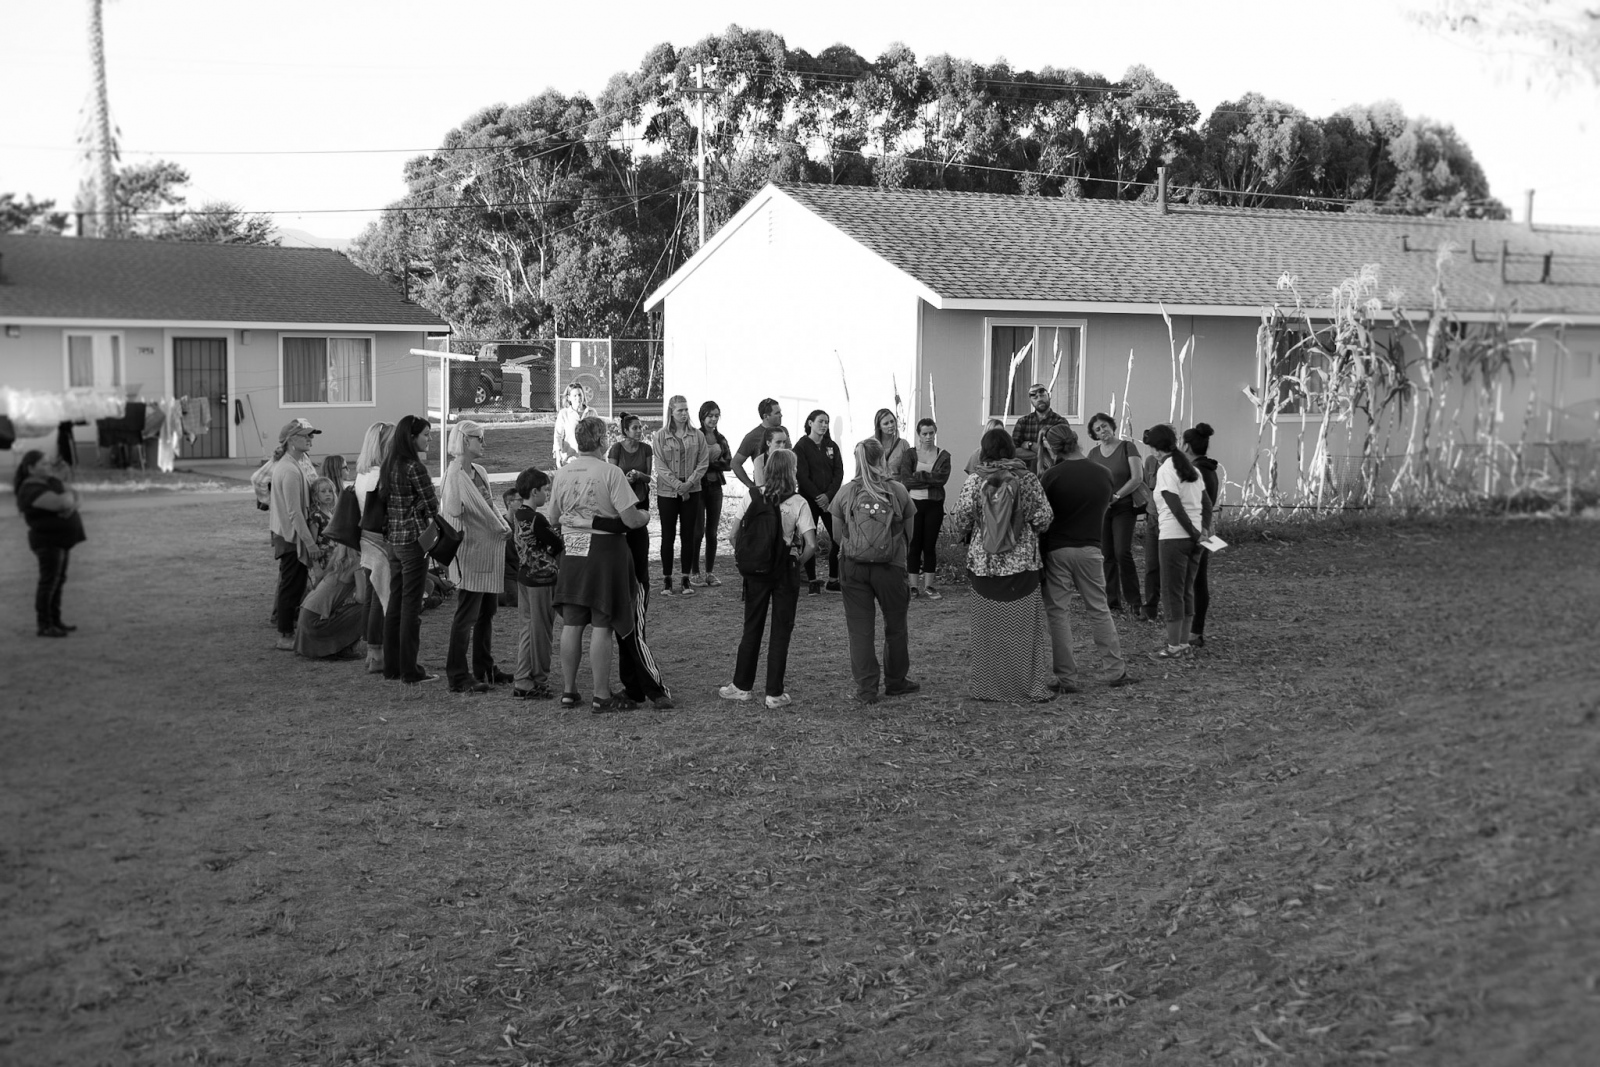 Dr. Ann Lopez speaks to a group of volunteers attending a Farm Worker Reality Tour. The tours are organized by the Center For Farmworker Families a nonprofit organization with the purpose of promoting awareness of the difficulties that farm workers face. Buena Vista Migrant Camp, October 27th, 2017 Watsonville CA.